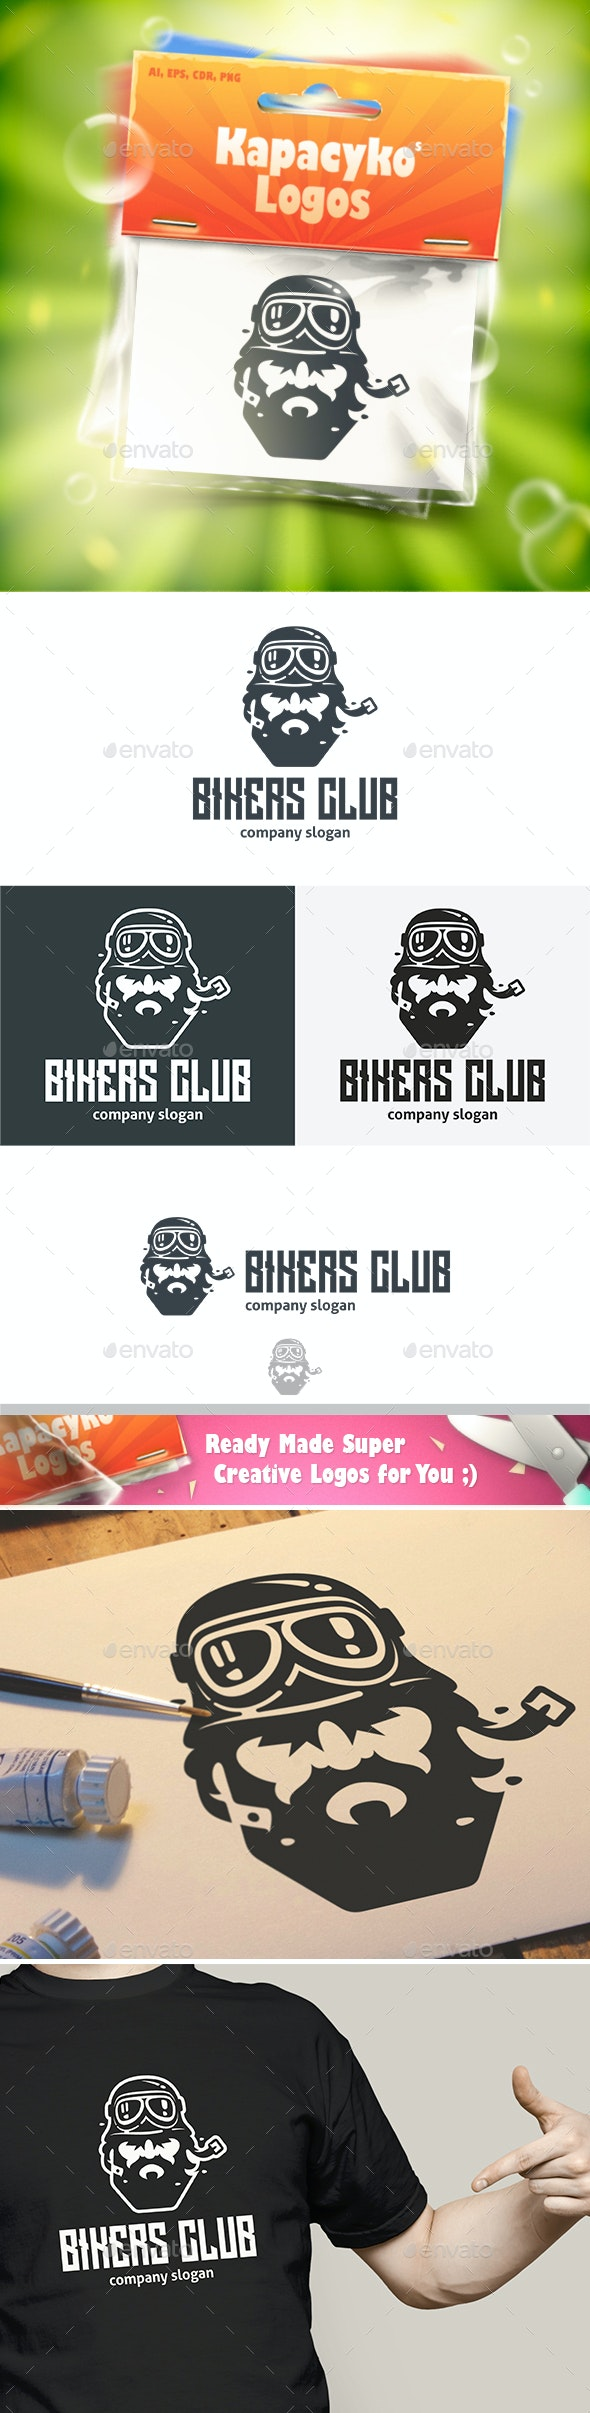 Bikers Club Logo - Humans Logo Templates